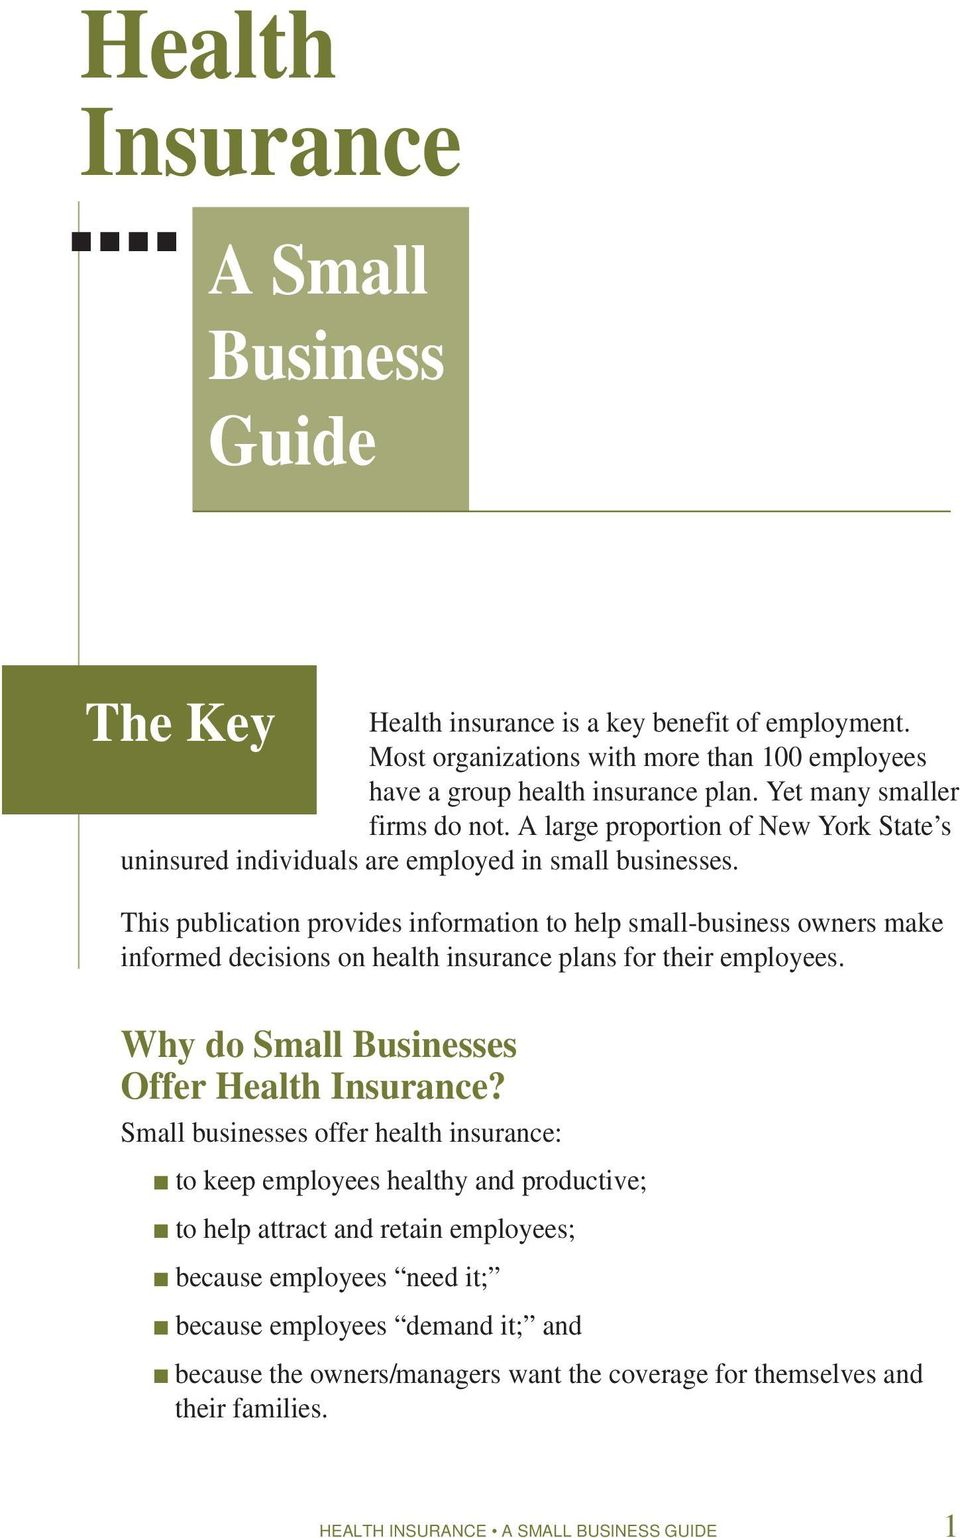 This publication provides information to help small-business owners make informed decisions on health insurance plans for their employees. Why do Small Businesses Offer Health Insurance?